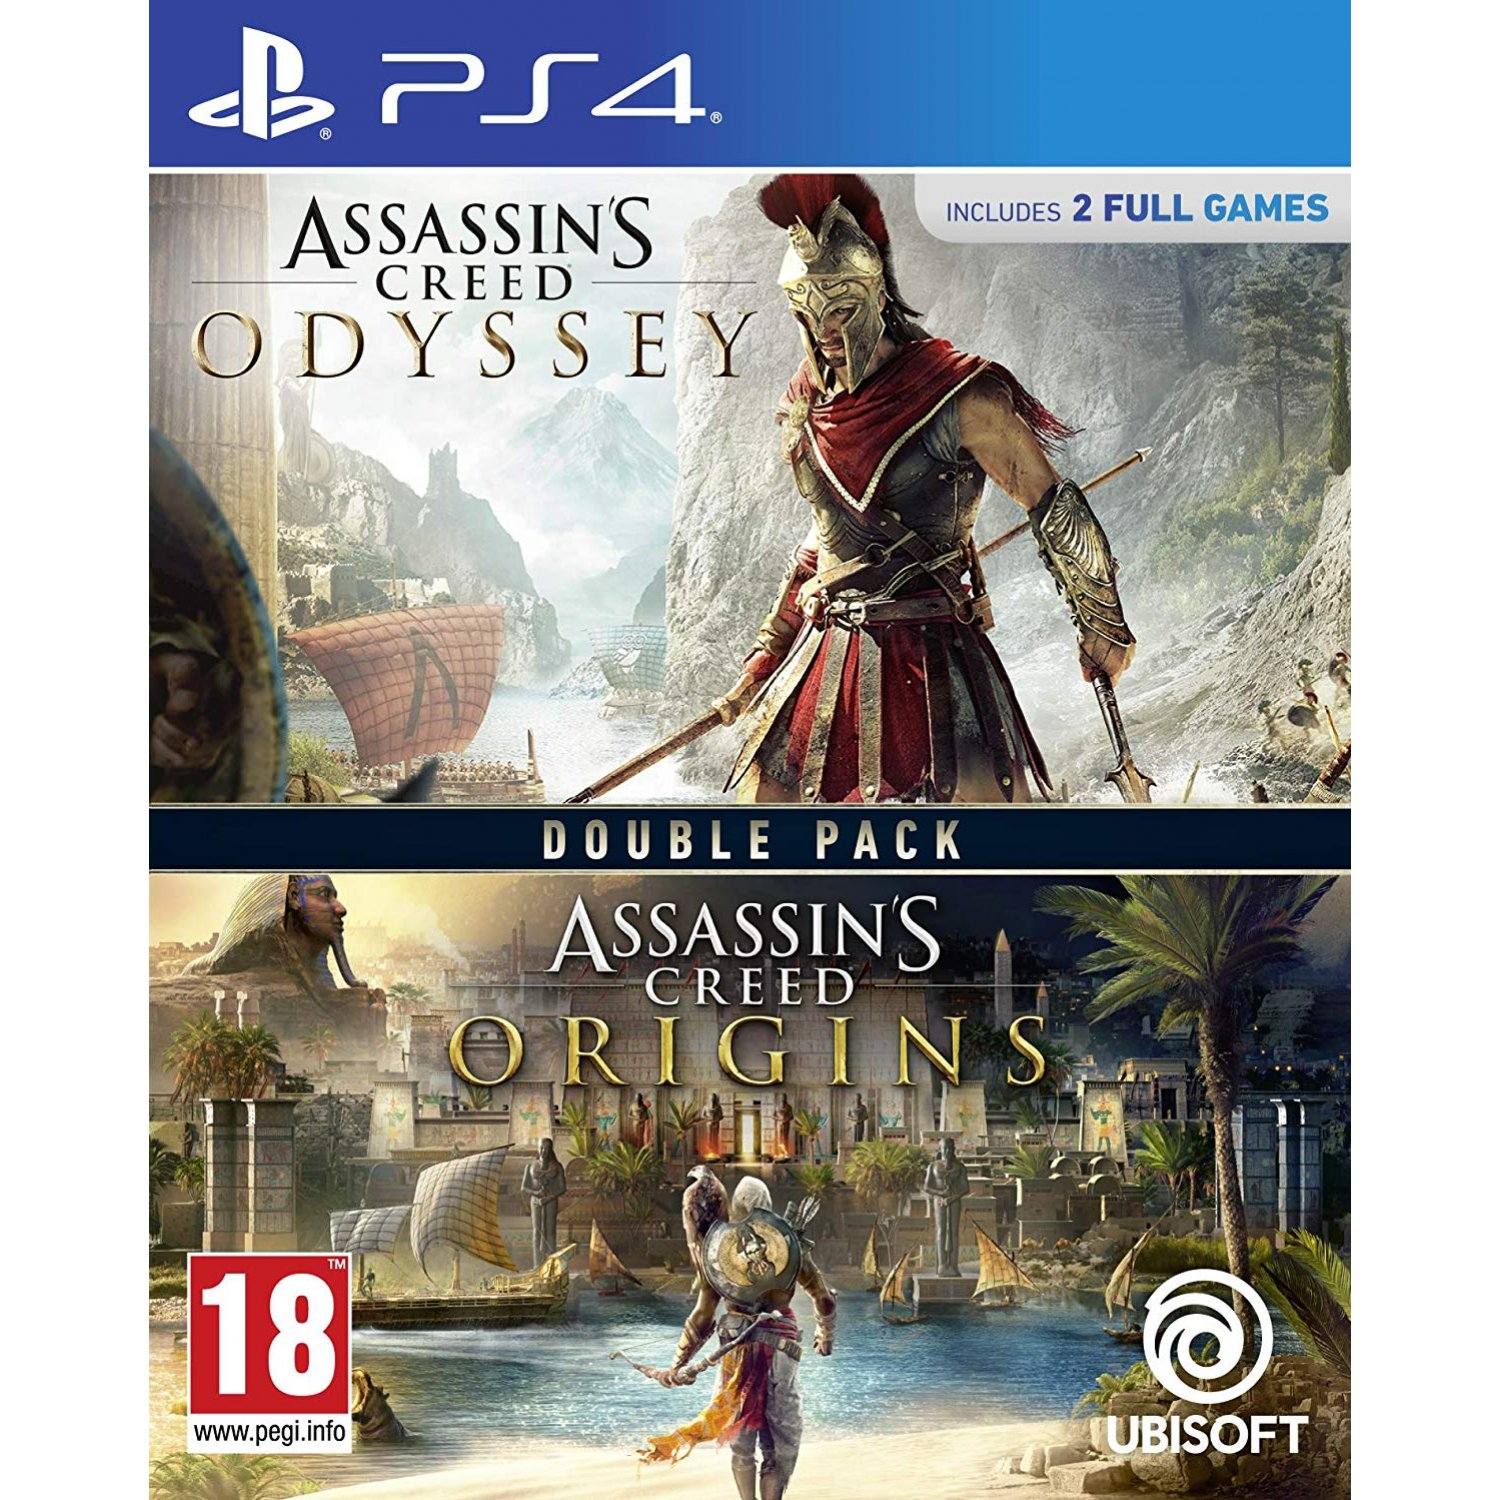 Assassins Creed Odyssey + Origins Double Pack